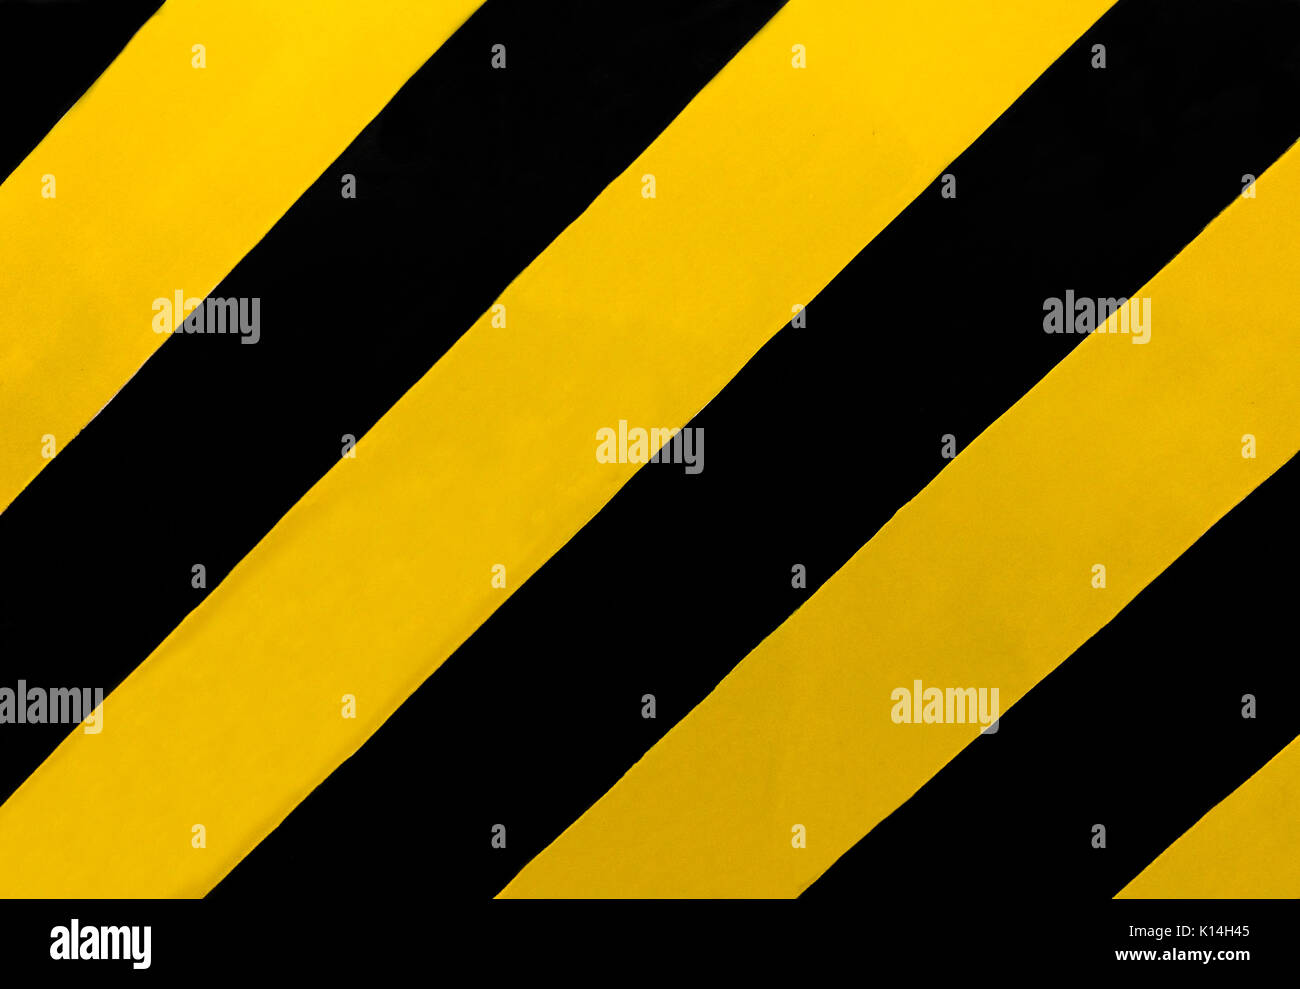 Road Signs For Sale >> Traffic Sign: A rectangular sign with diagonal yellow and black Stock Photo: 155609221 - Alamy